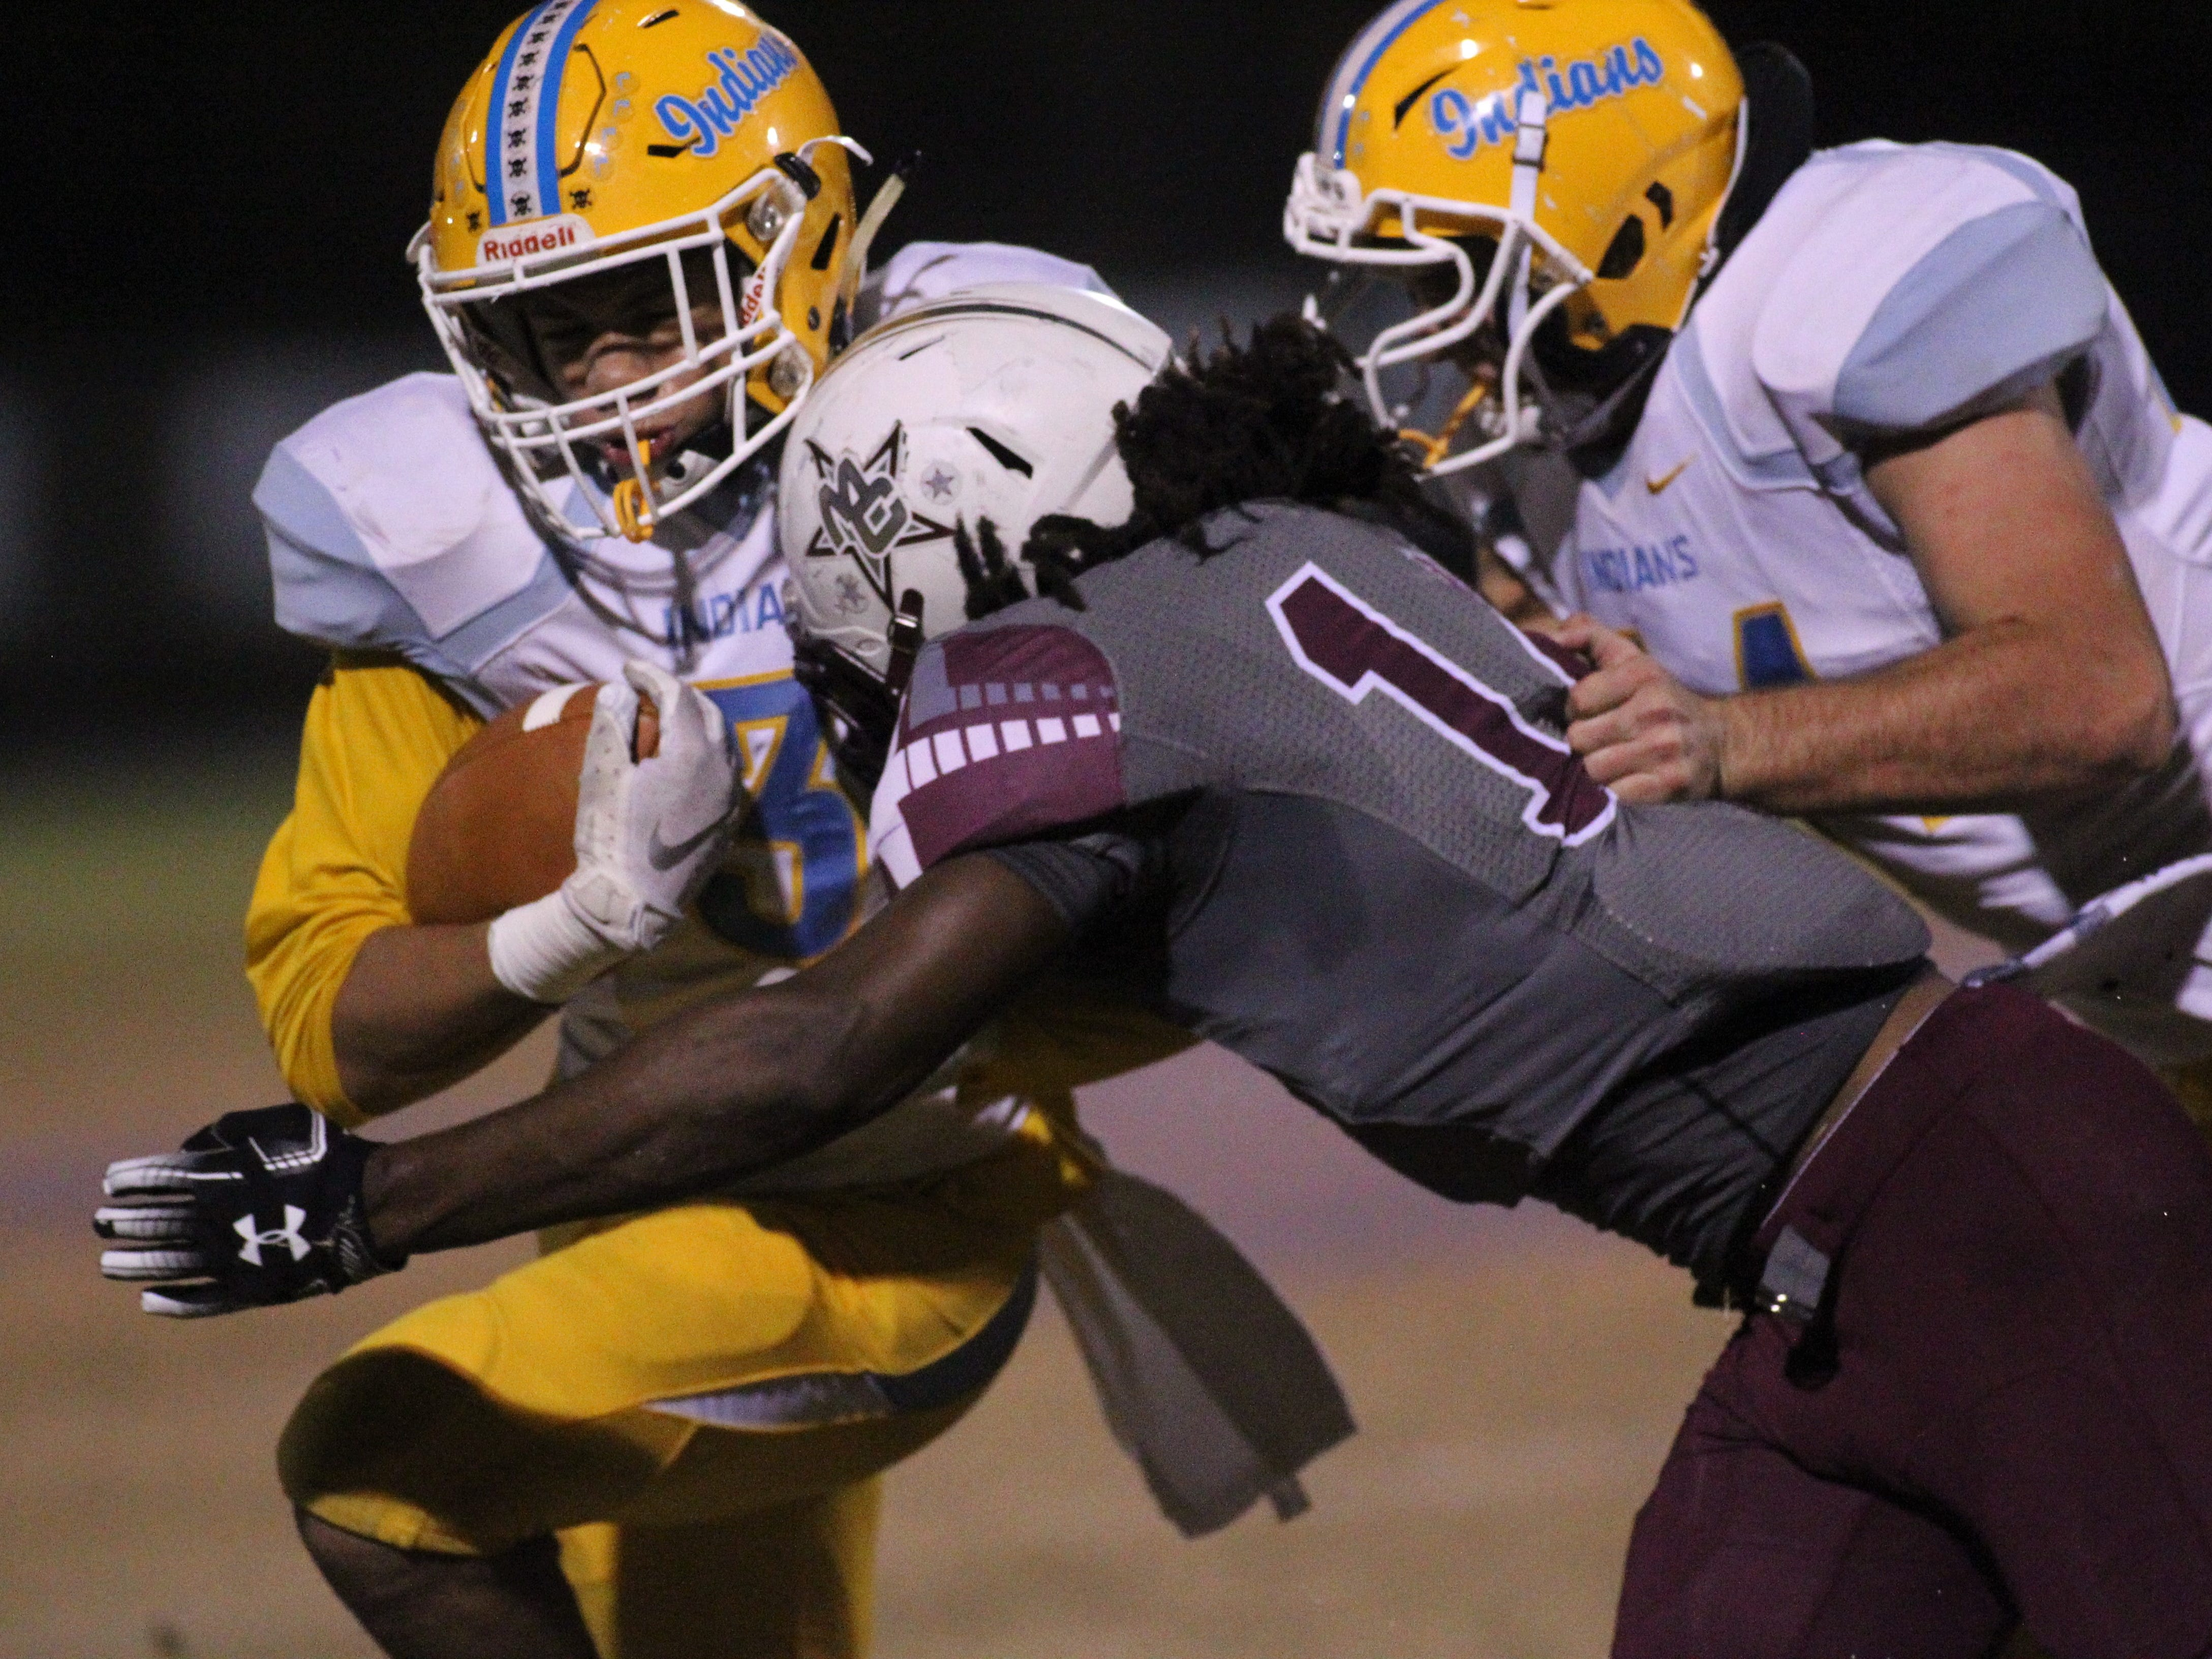 Madison County linebacker Melvin Brown lays a hit on Chiefland's Kirk Williams as the Cowboys beat Chiefland 49-14 in a Region 3-1A final at Boot Hill Stadium on Friday, Nov. 23, 2018.